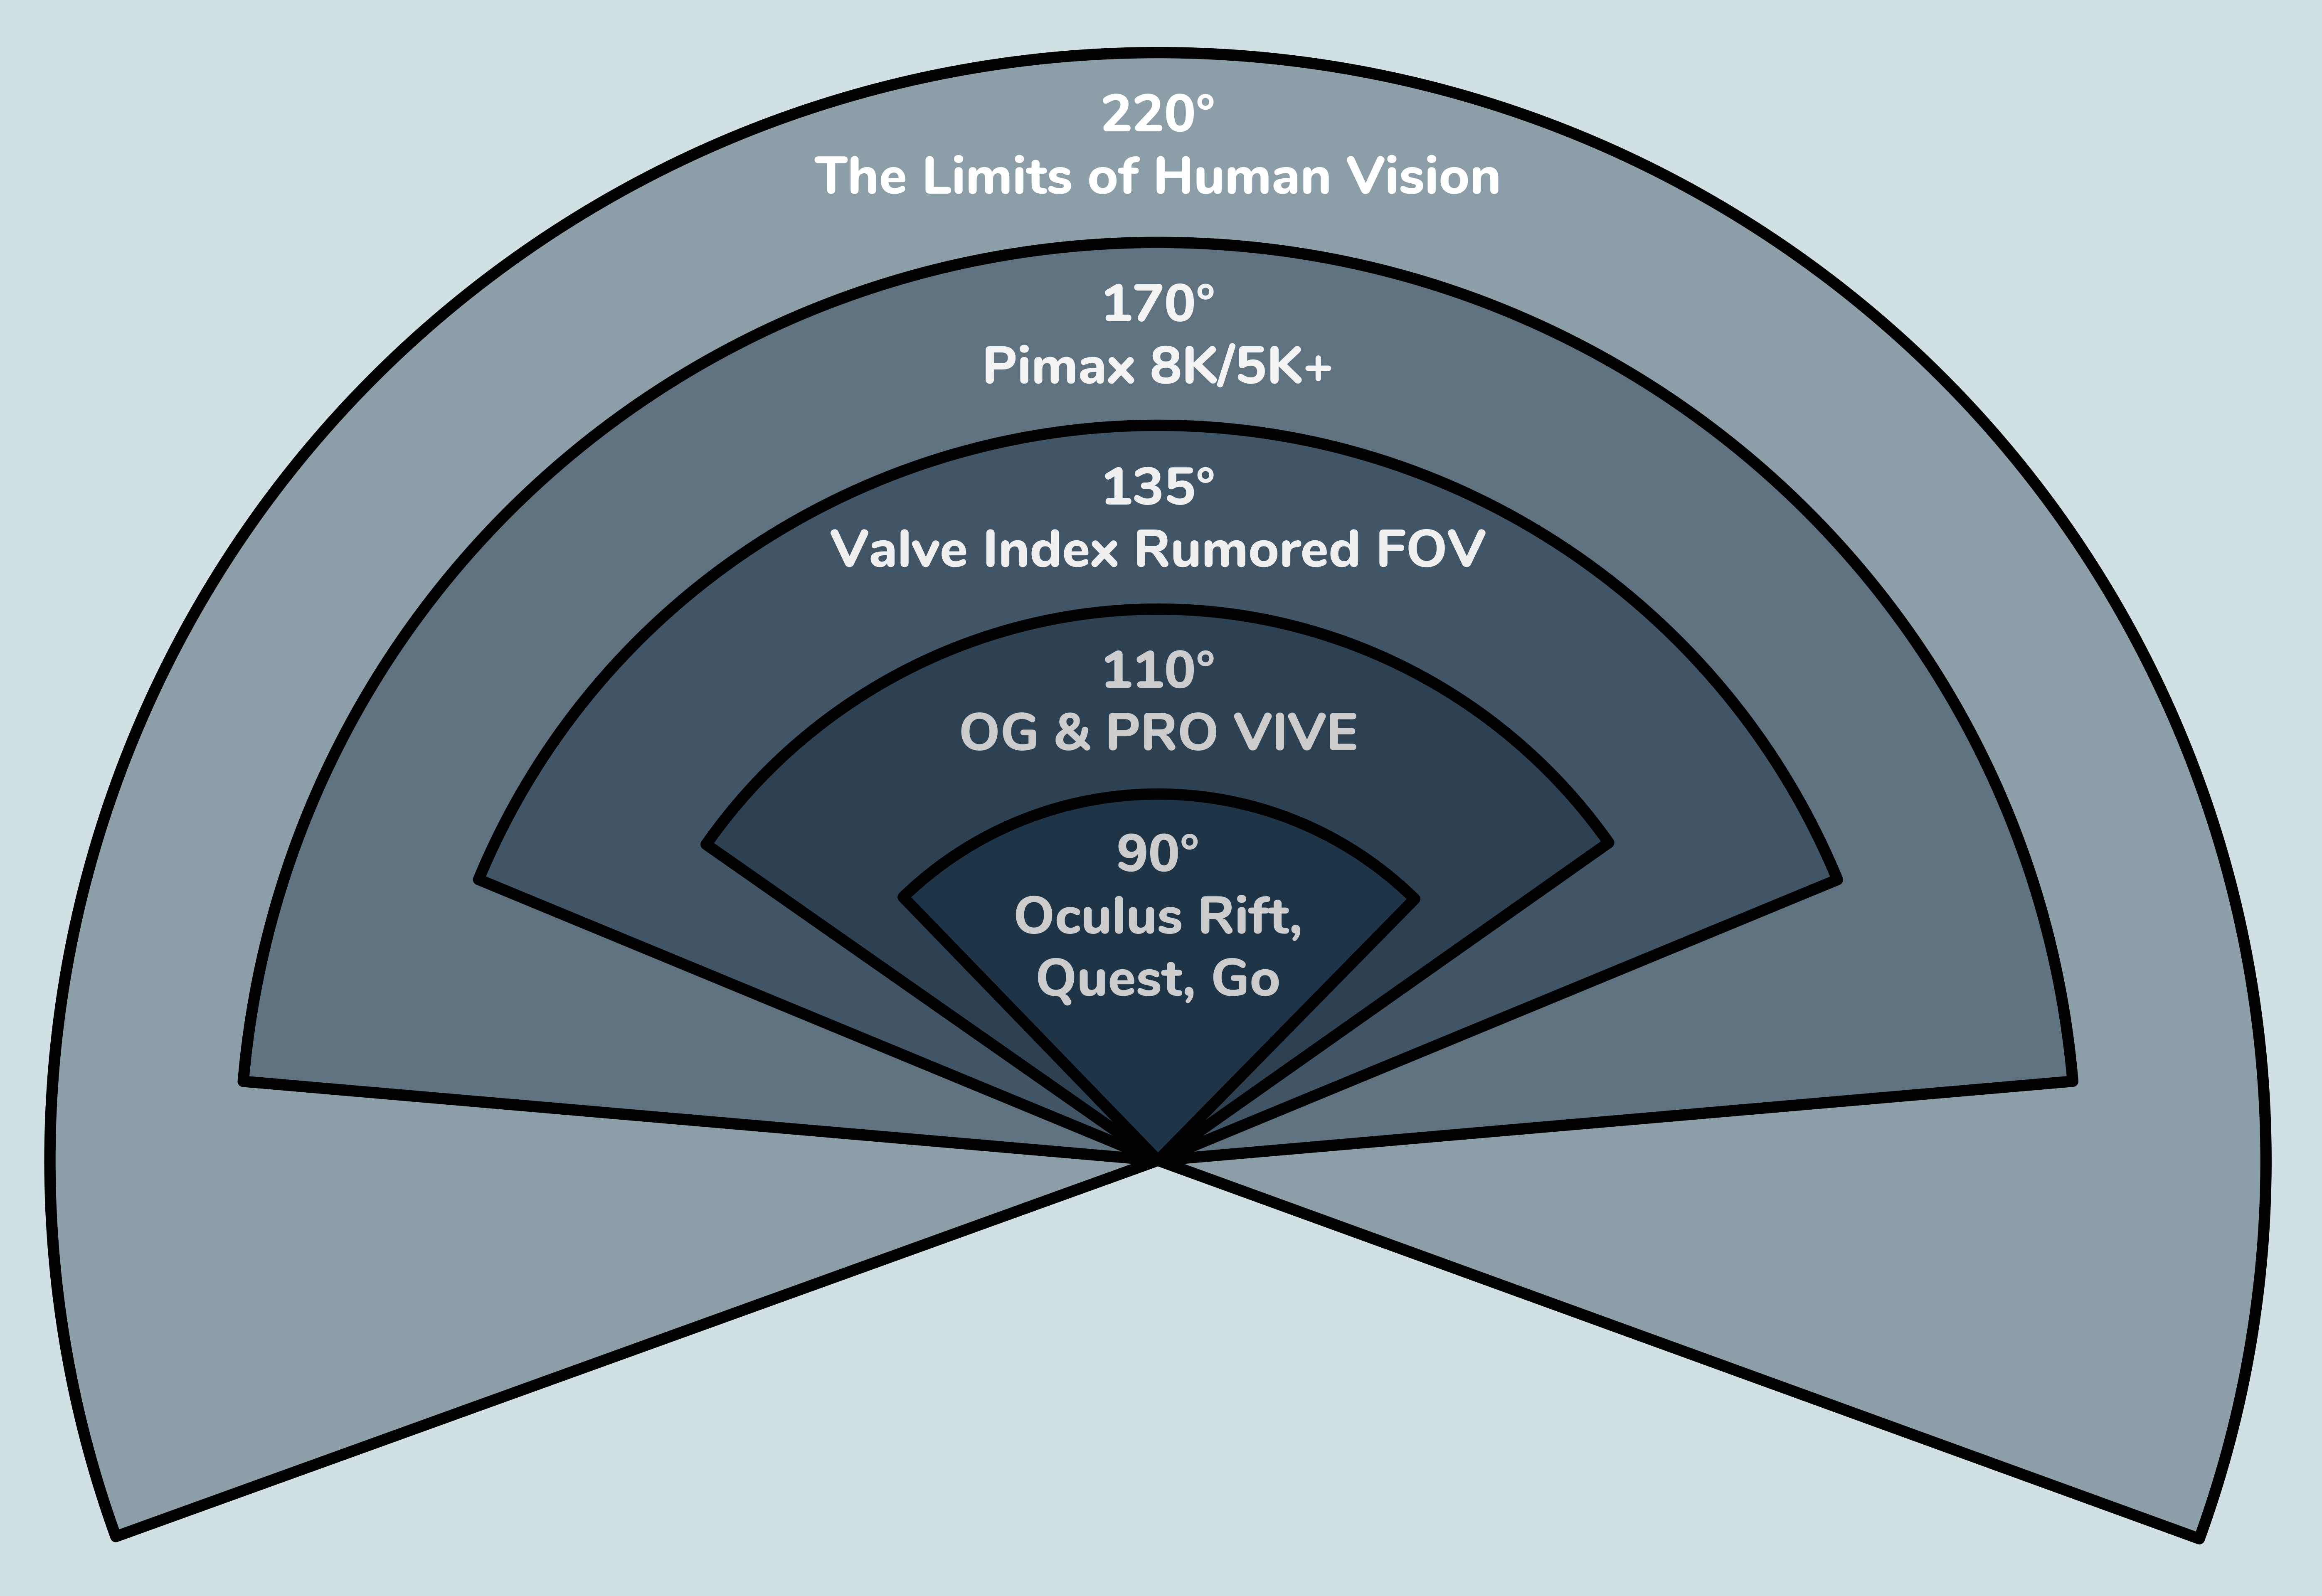 Comparison of the Horizontal FOV of different headsets